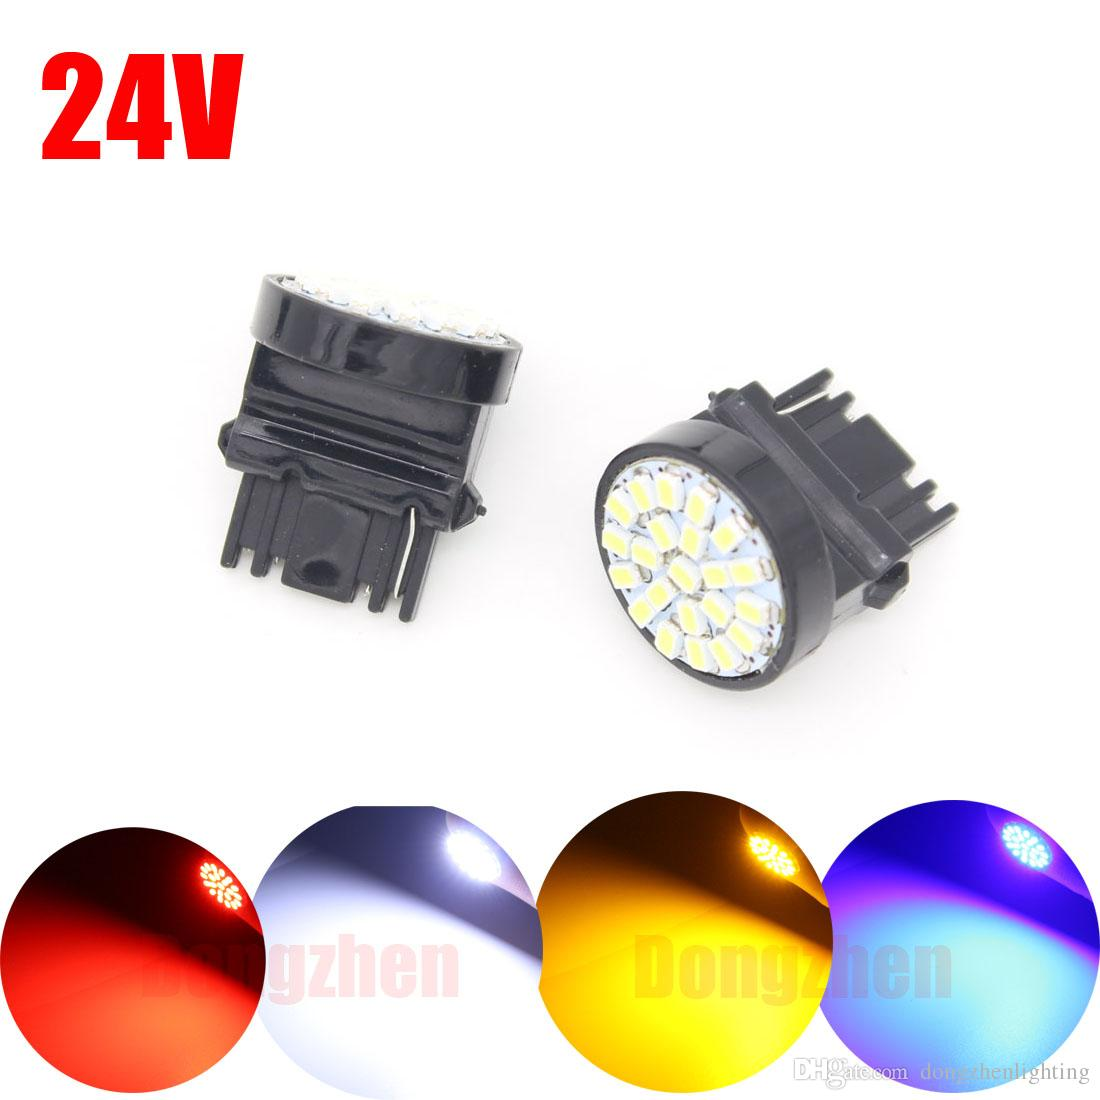 1X Motor Auto Car bulbs Headlight 3156 T25 S25 22 LED 24v 12v Additional Brake Lights Reversing Rear Tail Tur Signals Marker Lamp DRL